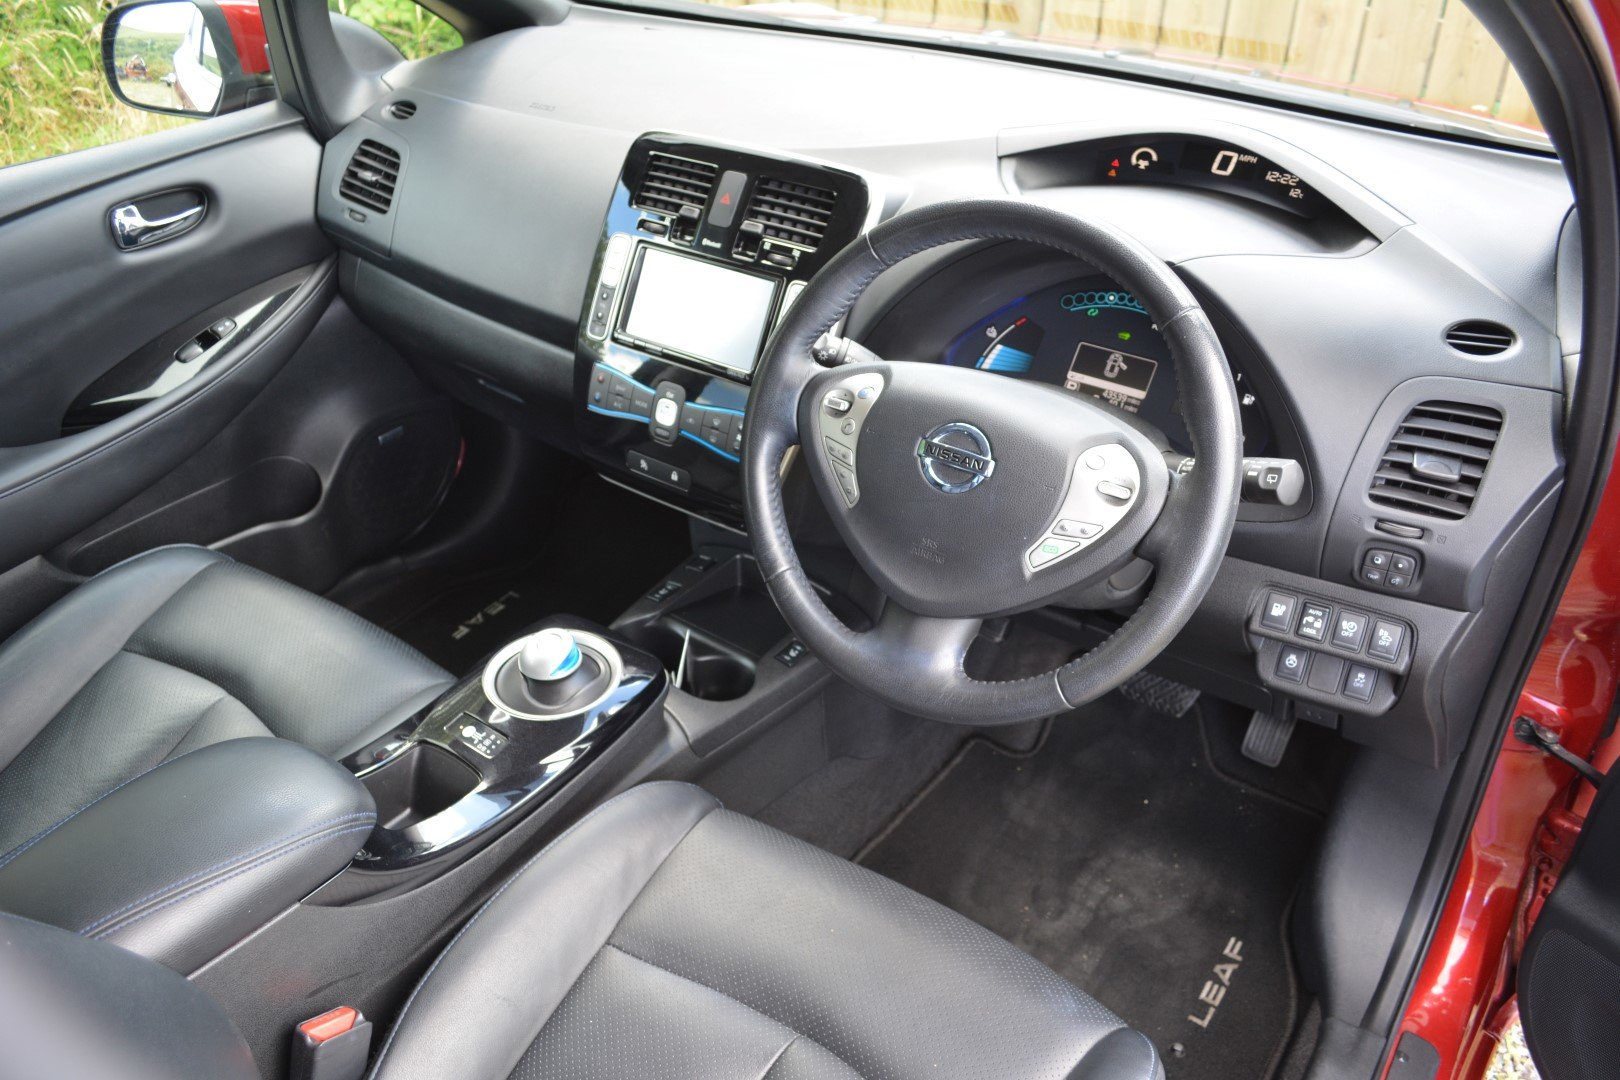 2015 Nissan Leaf Tekna 24kwh - Heated Leather - Sat Nav For Sale (picture 5 of 6)